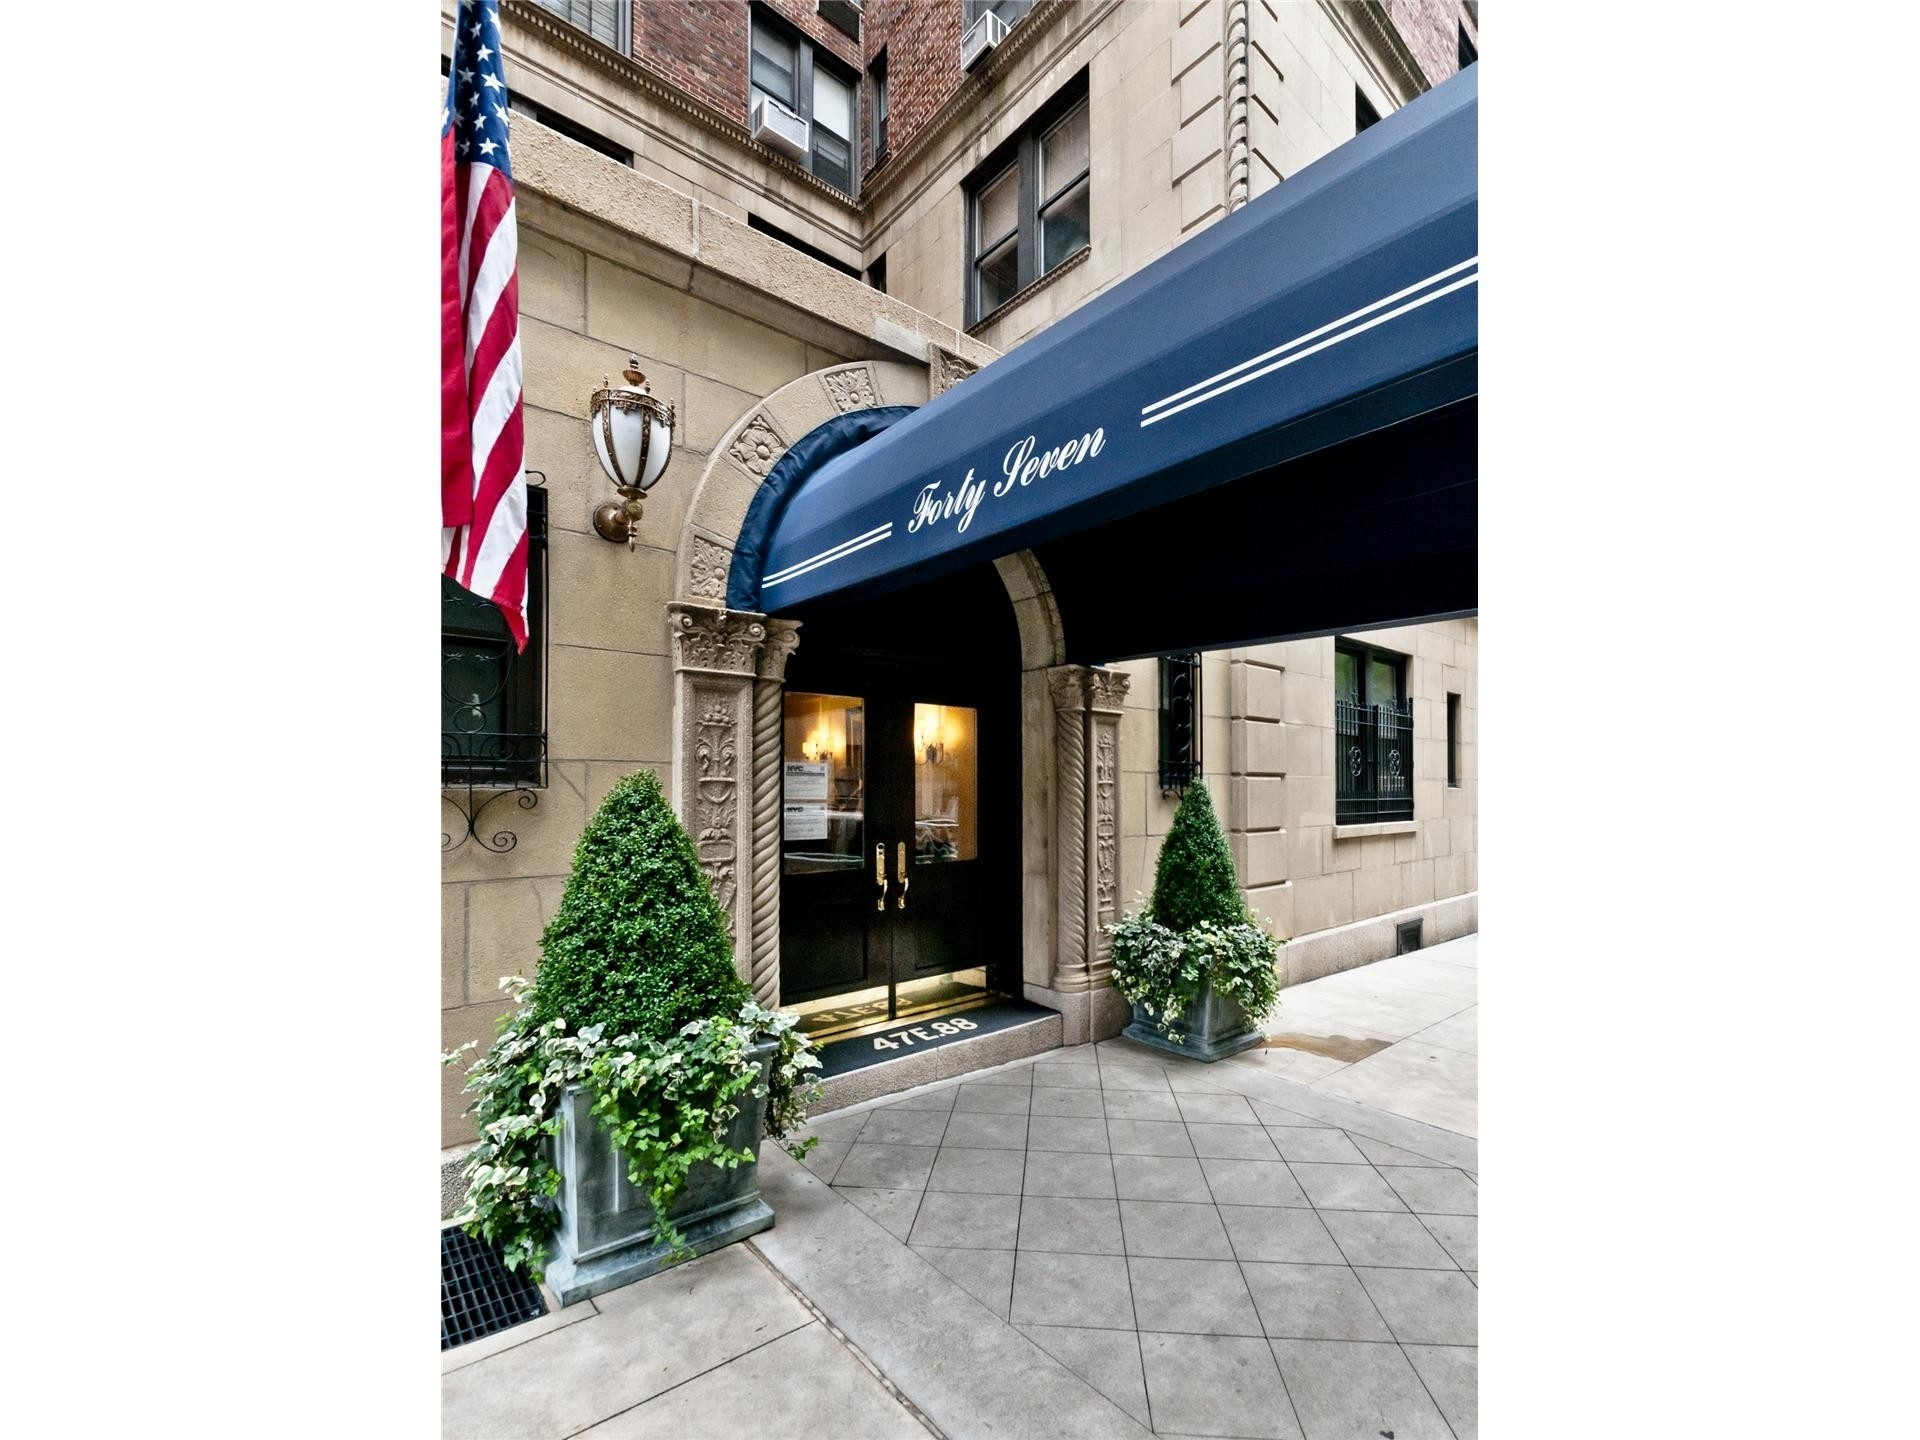 1. bâtiment à 47 East 88 Street, Carnegie Hill, New York, NY 10128